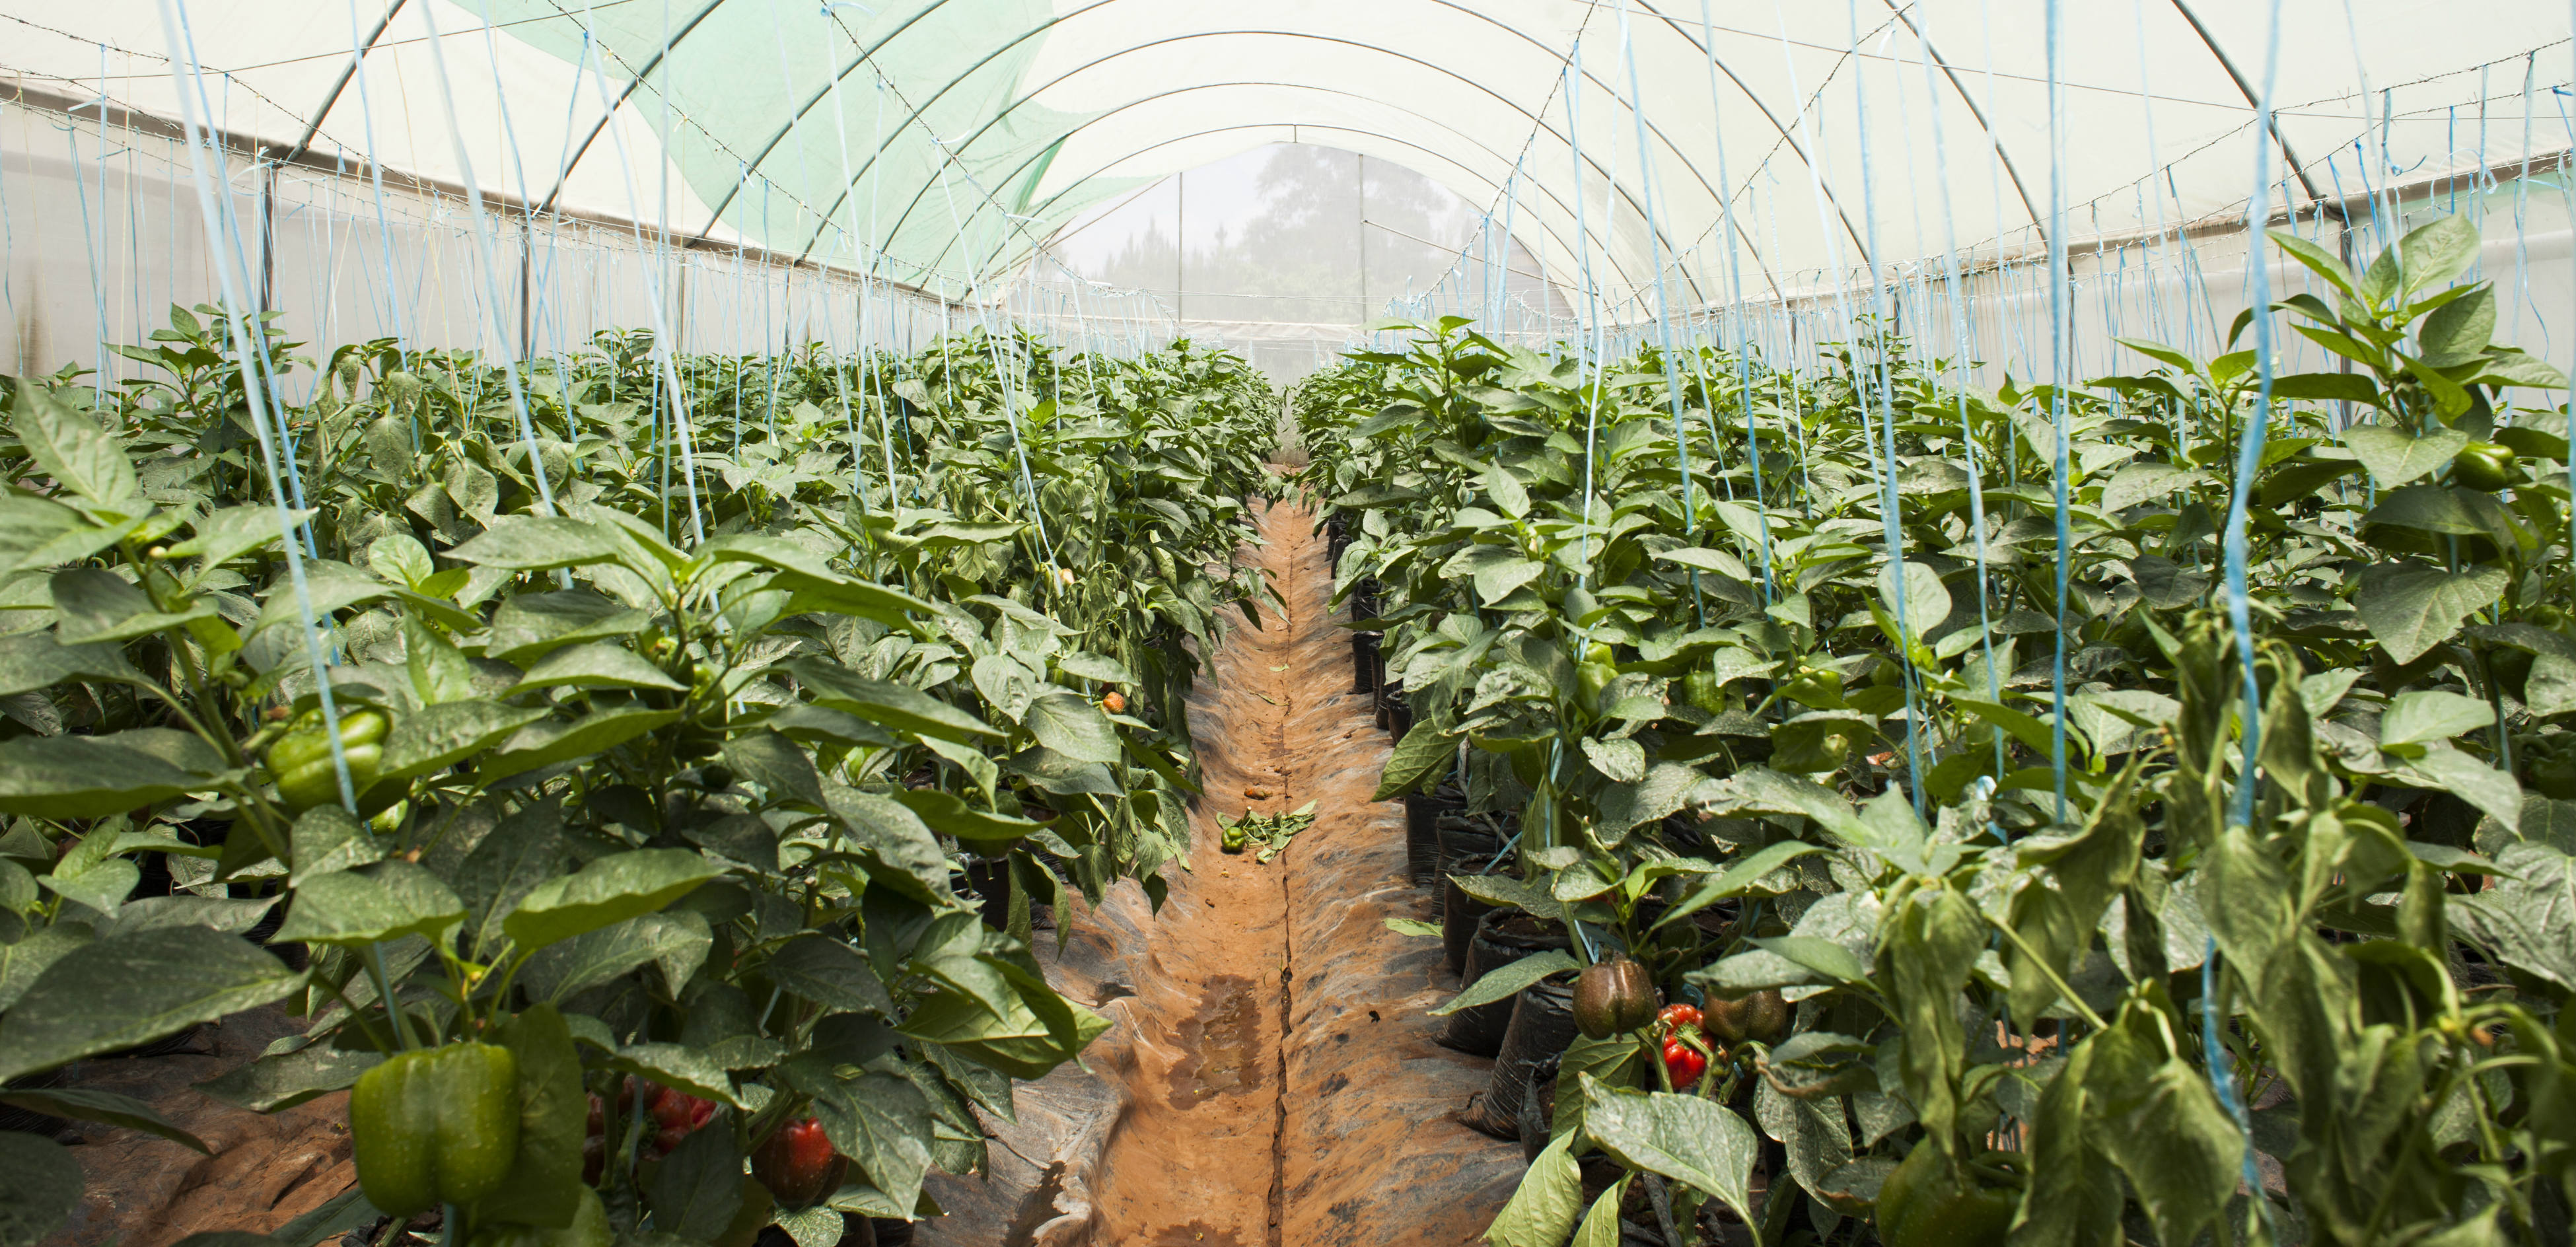 Glasshouse harvesting: a great opportunity for the farm